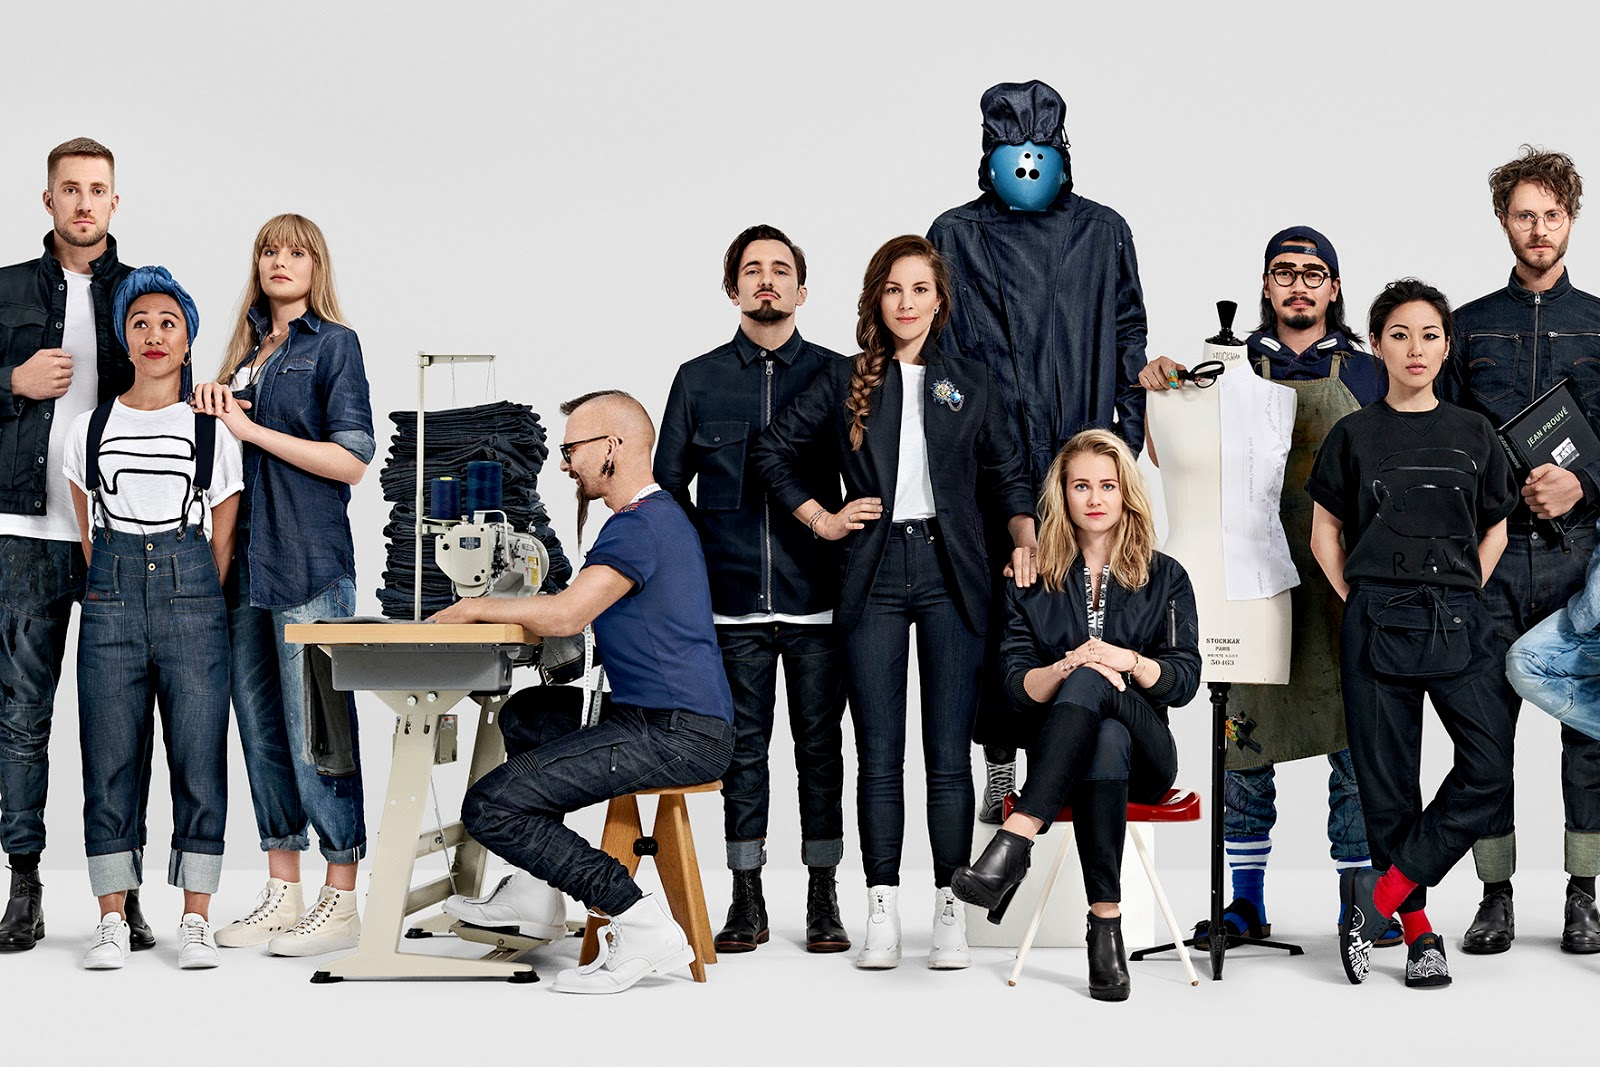 G-Star Raw Sustainable Fashion - Sustainable denim - eco-friendly brands